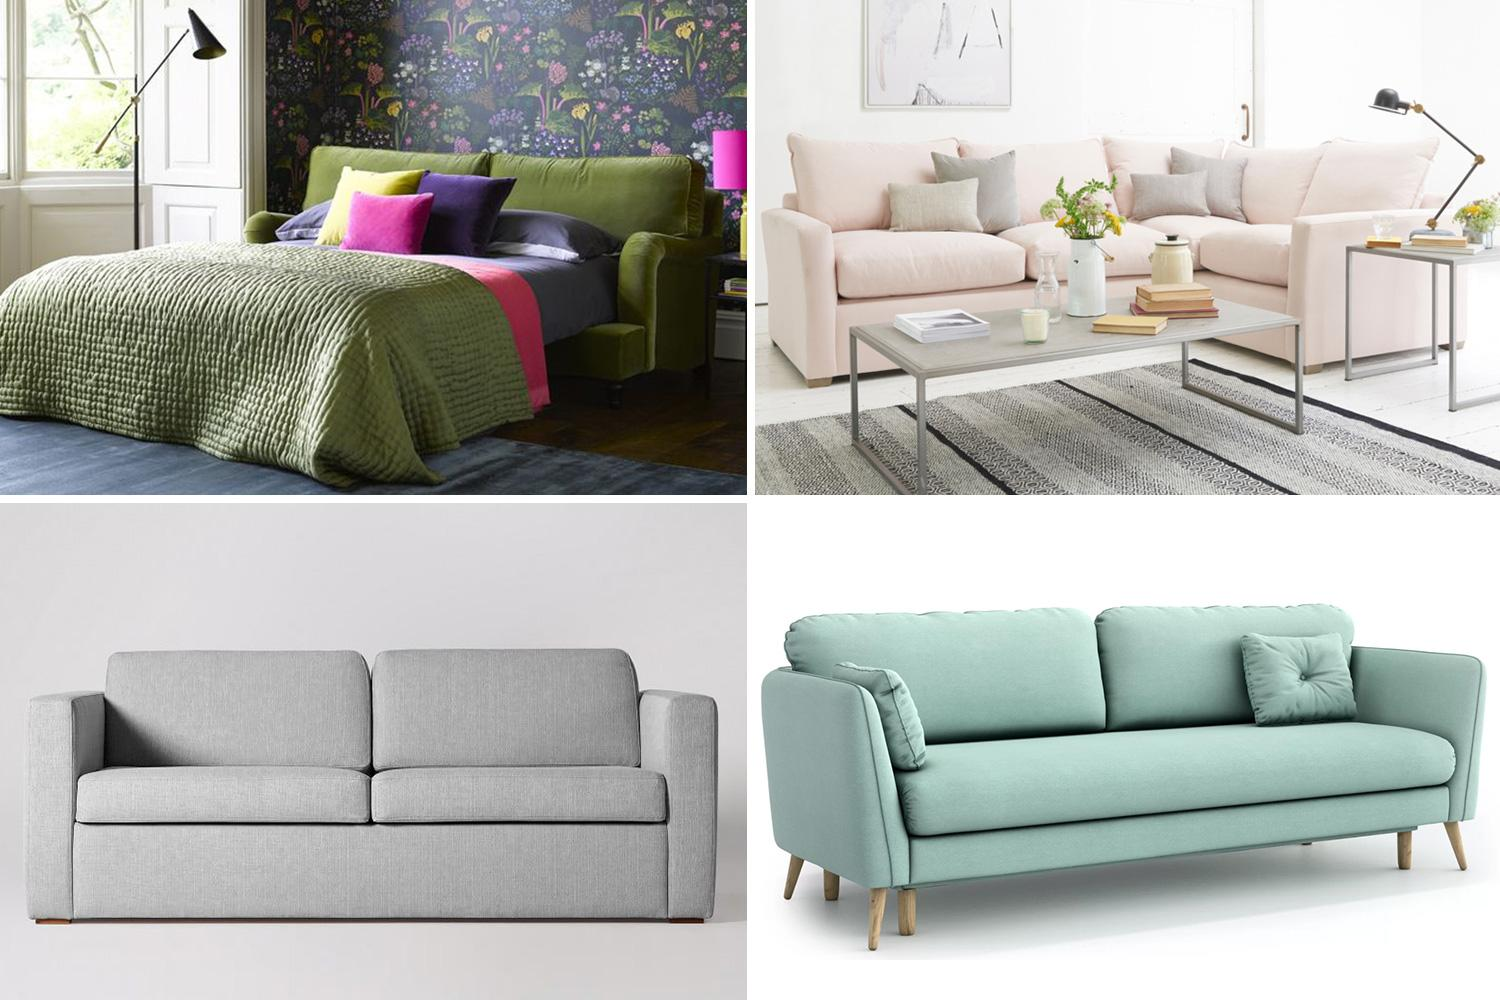 Habitat Rupert Sofa Review Best Sofa Beds 2019 The Sun Uk